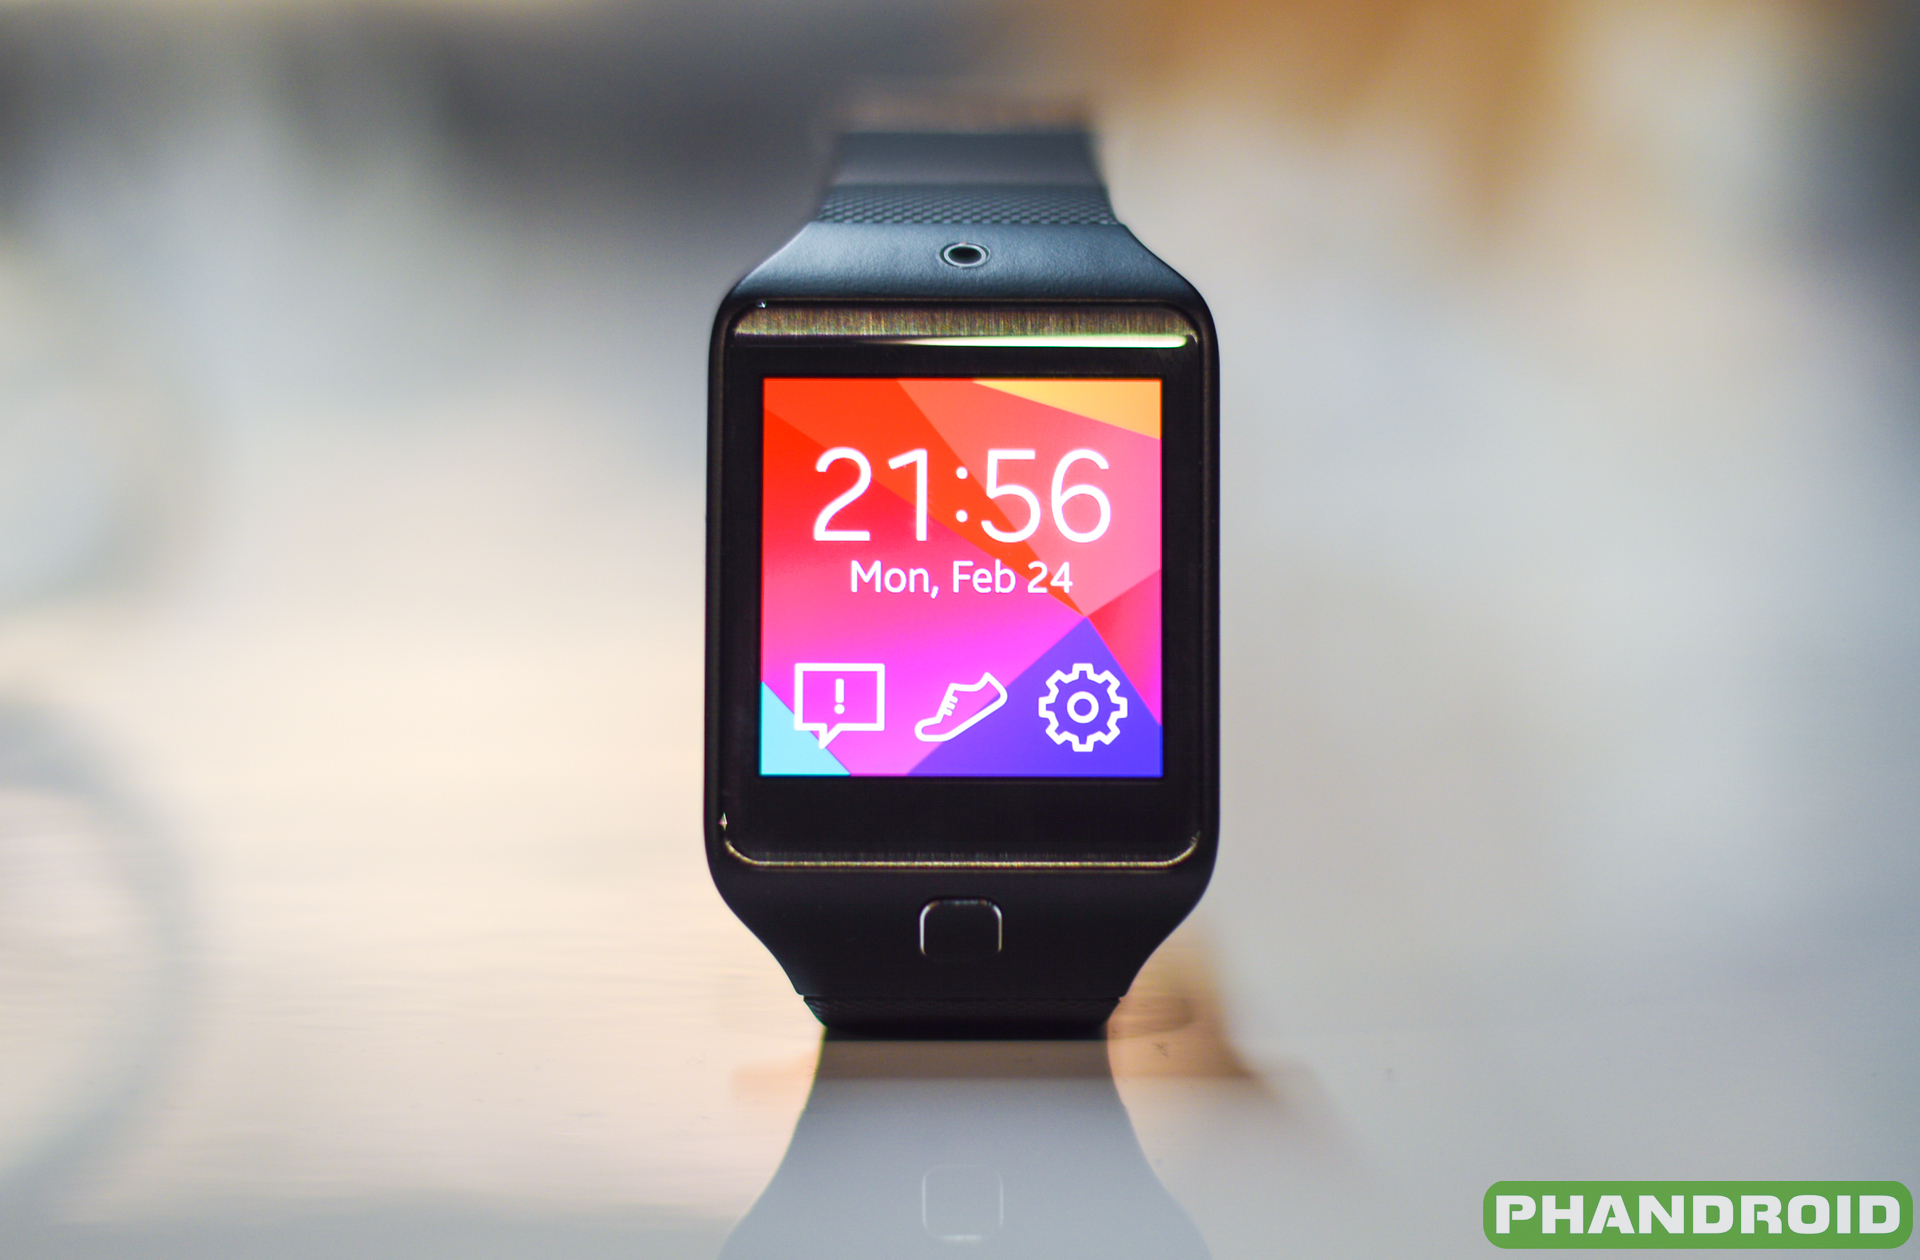 galaxy unveils in mwc and image pc unveiled gear fit shape discover with stay mobile uk neo new samsung watches range